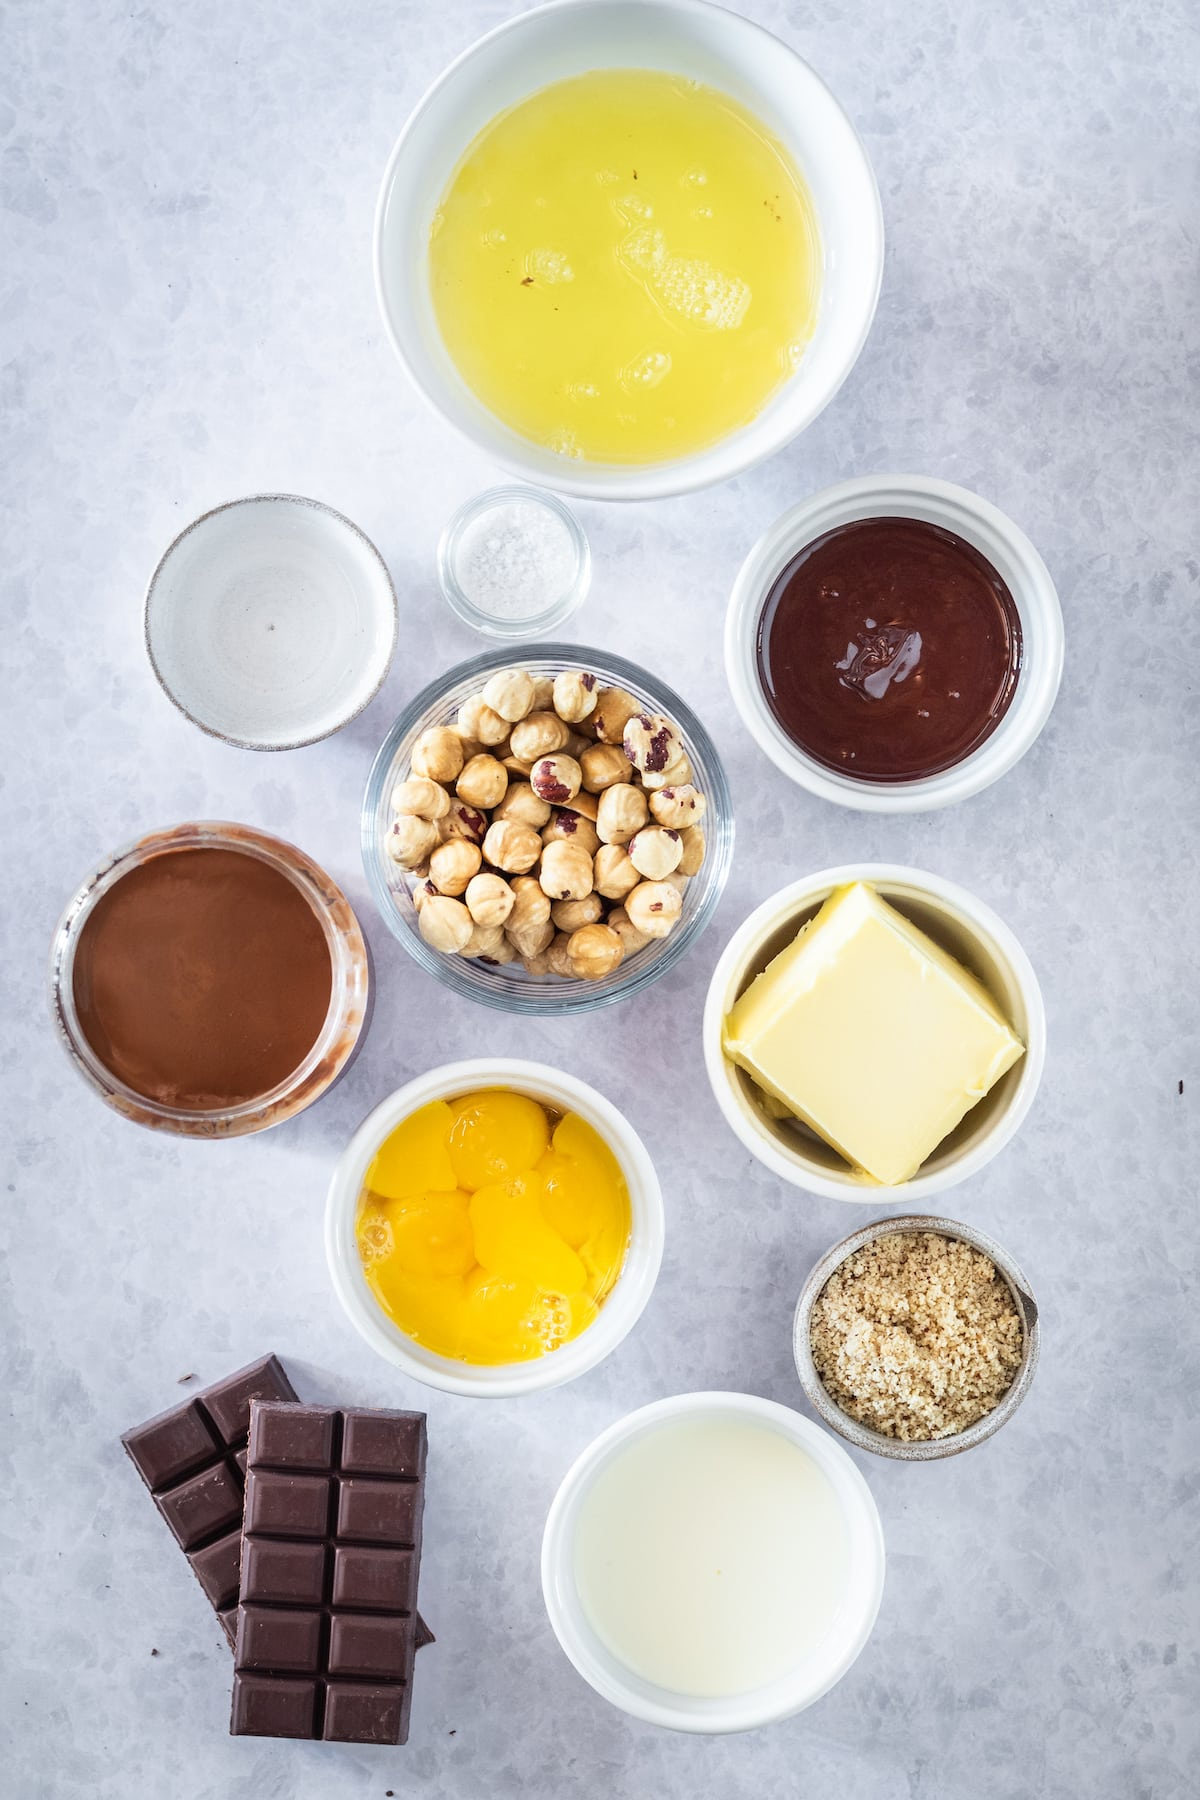 ingredients for chocolate cake with hazelnuts in small bowls